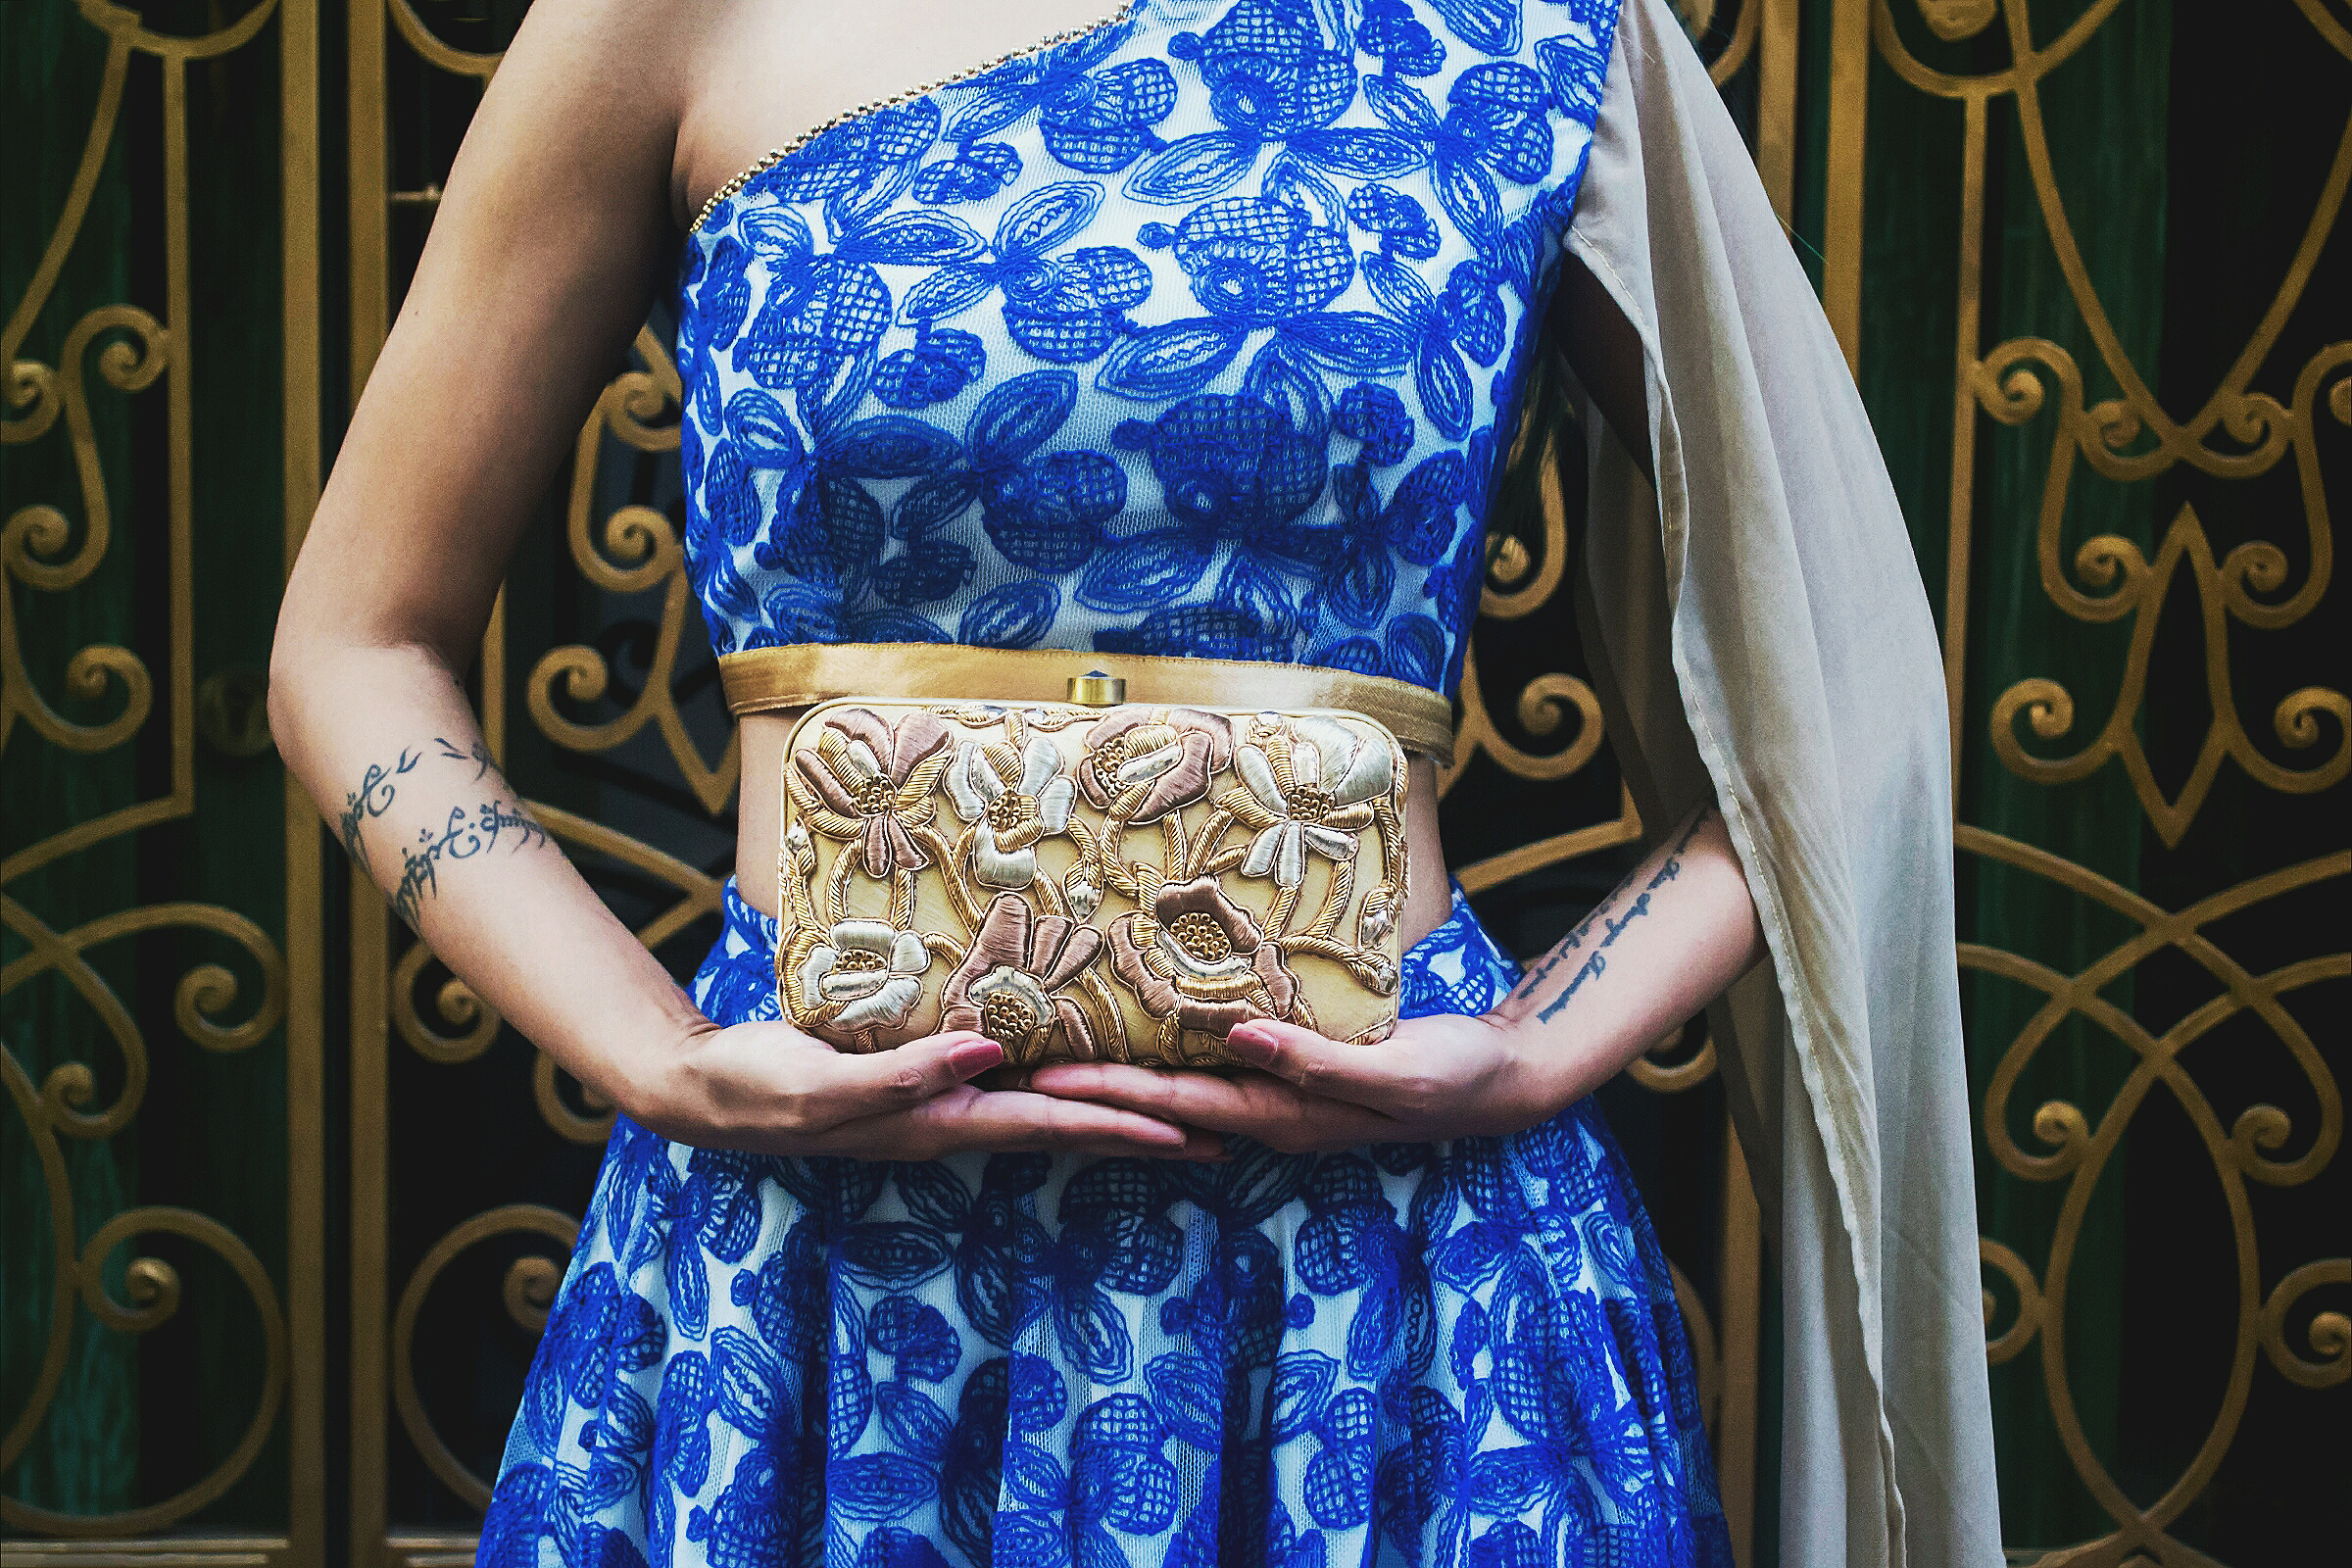 The-Chic-Armoire-by-Nidhi-Kunder-Couture-Mantra-7